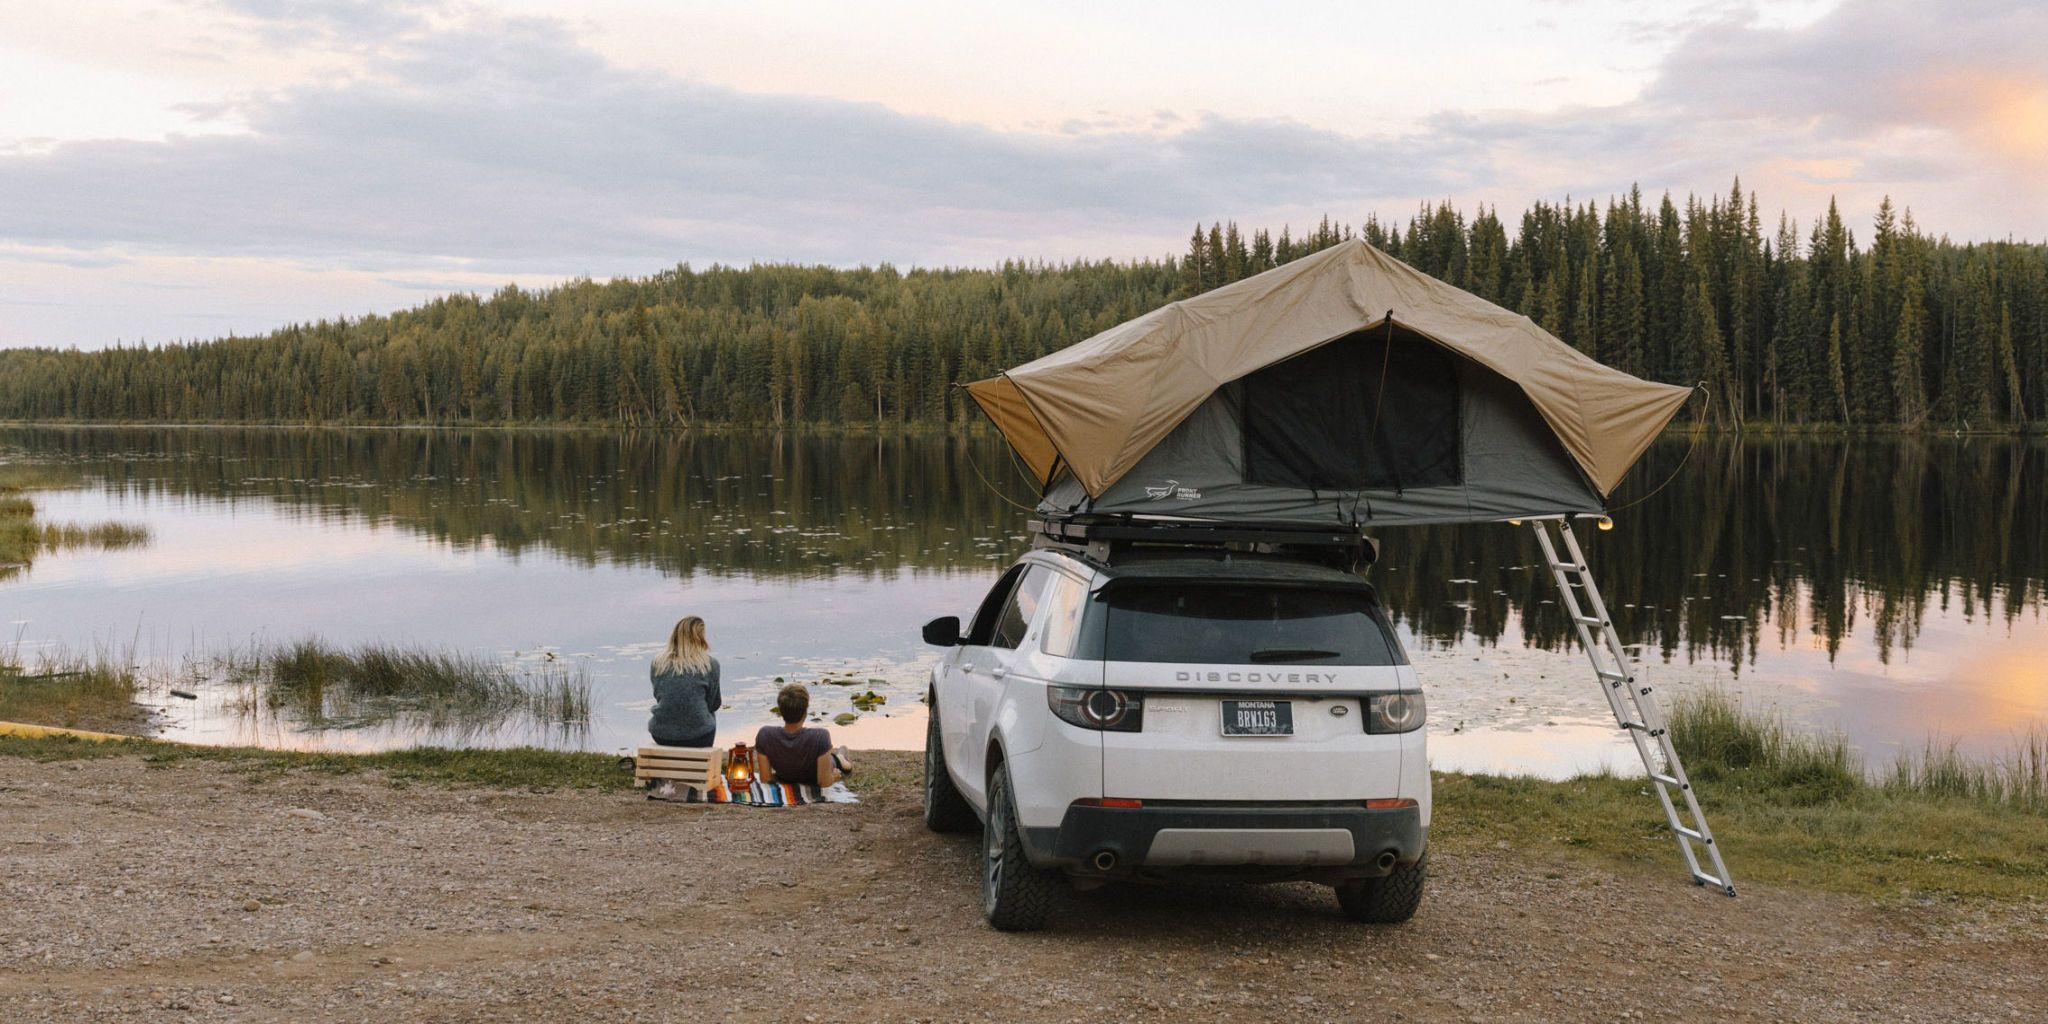 Roof top tents assemble in seconds which allow you more time around the c&fire and less time fiddling with tent poles. : cartop tents - memphite.com